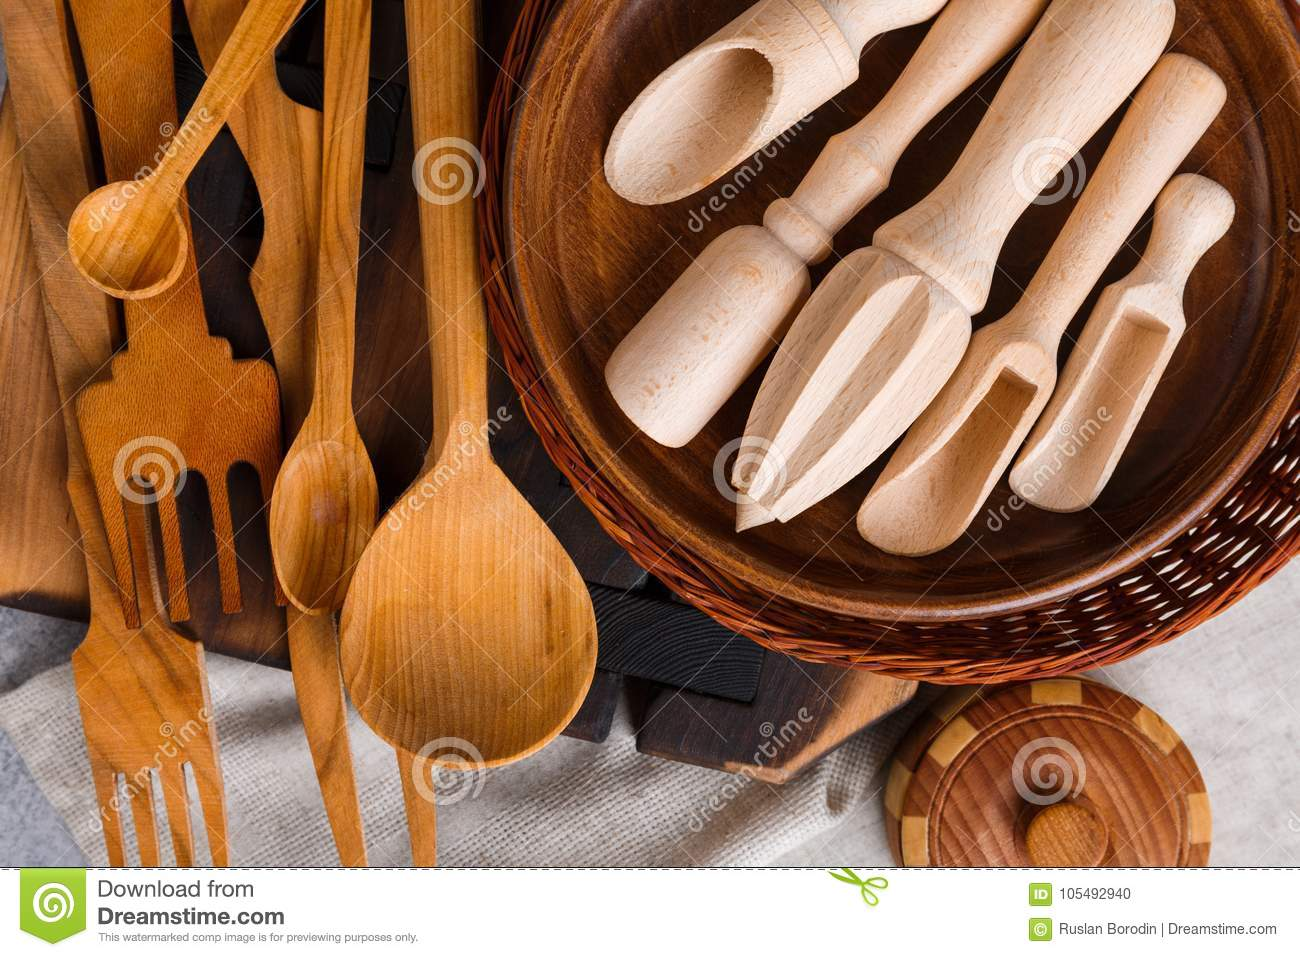 On the table are various wooden kitchen utensils view for Table utensils